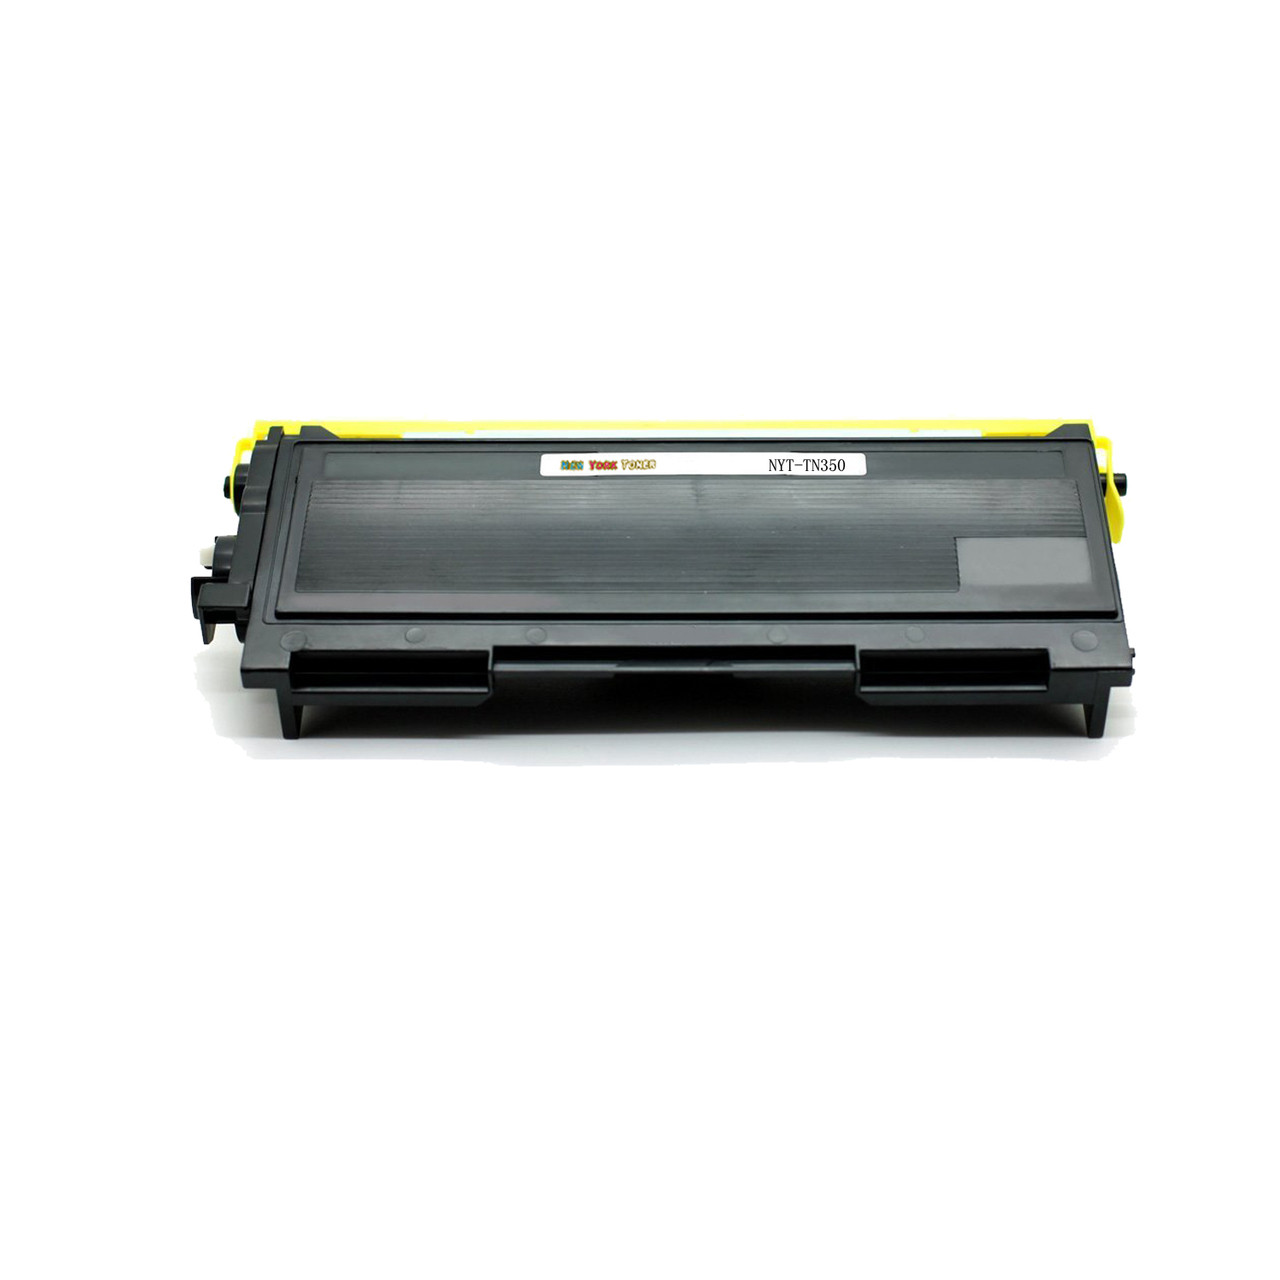 BROTHER FAX 2820 PRINTER DRIVERS